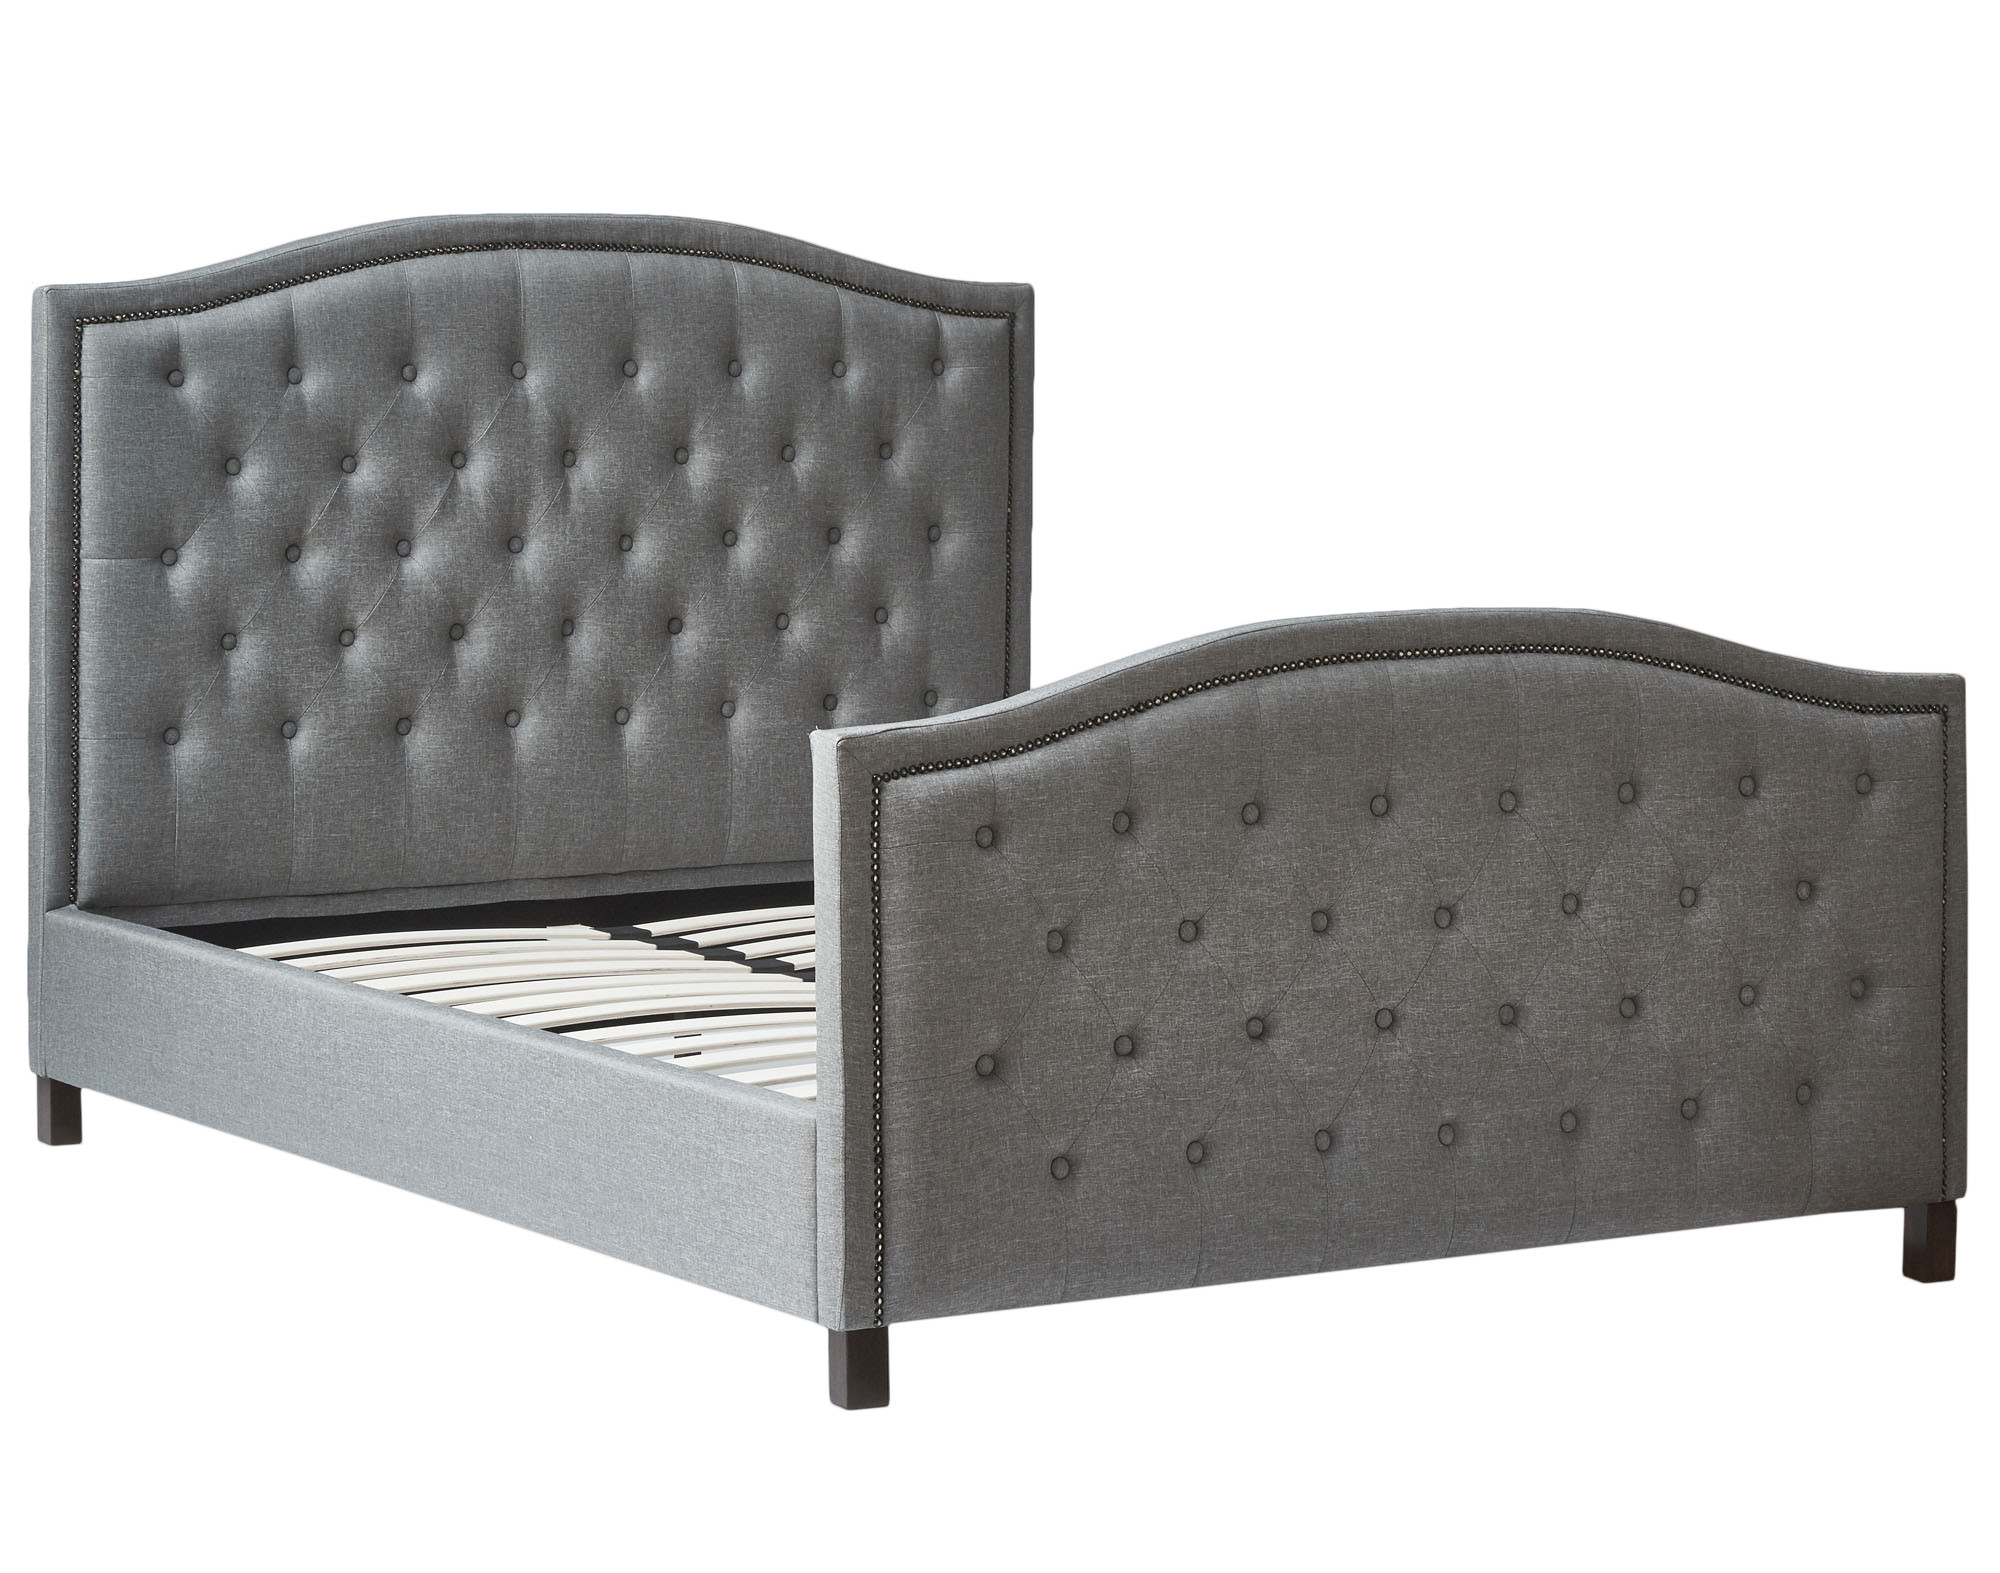 New light grey luxury queen bed frame ebay for New bed frame